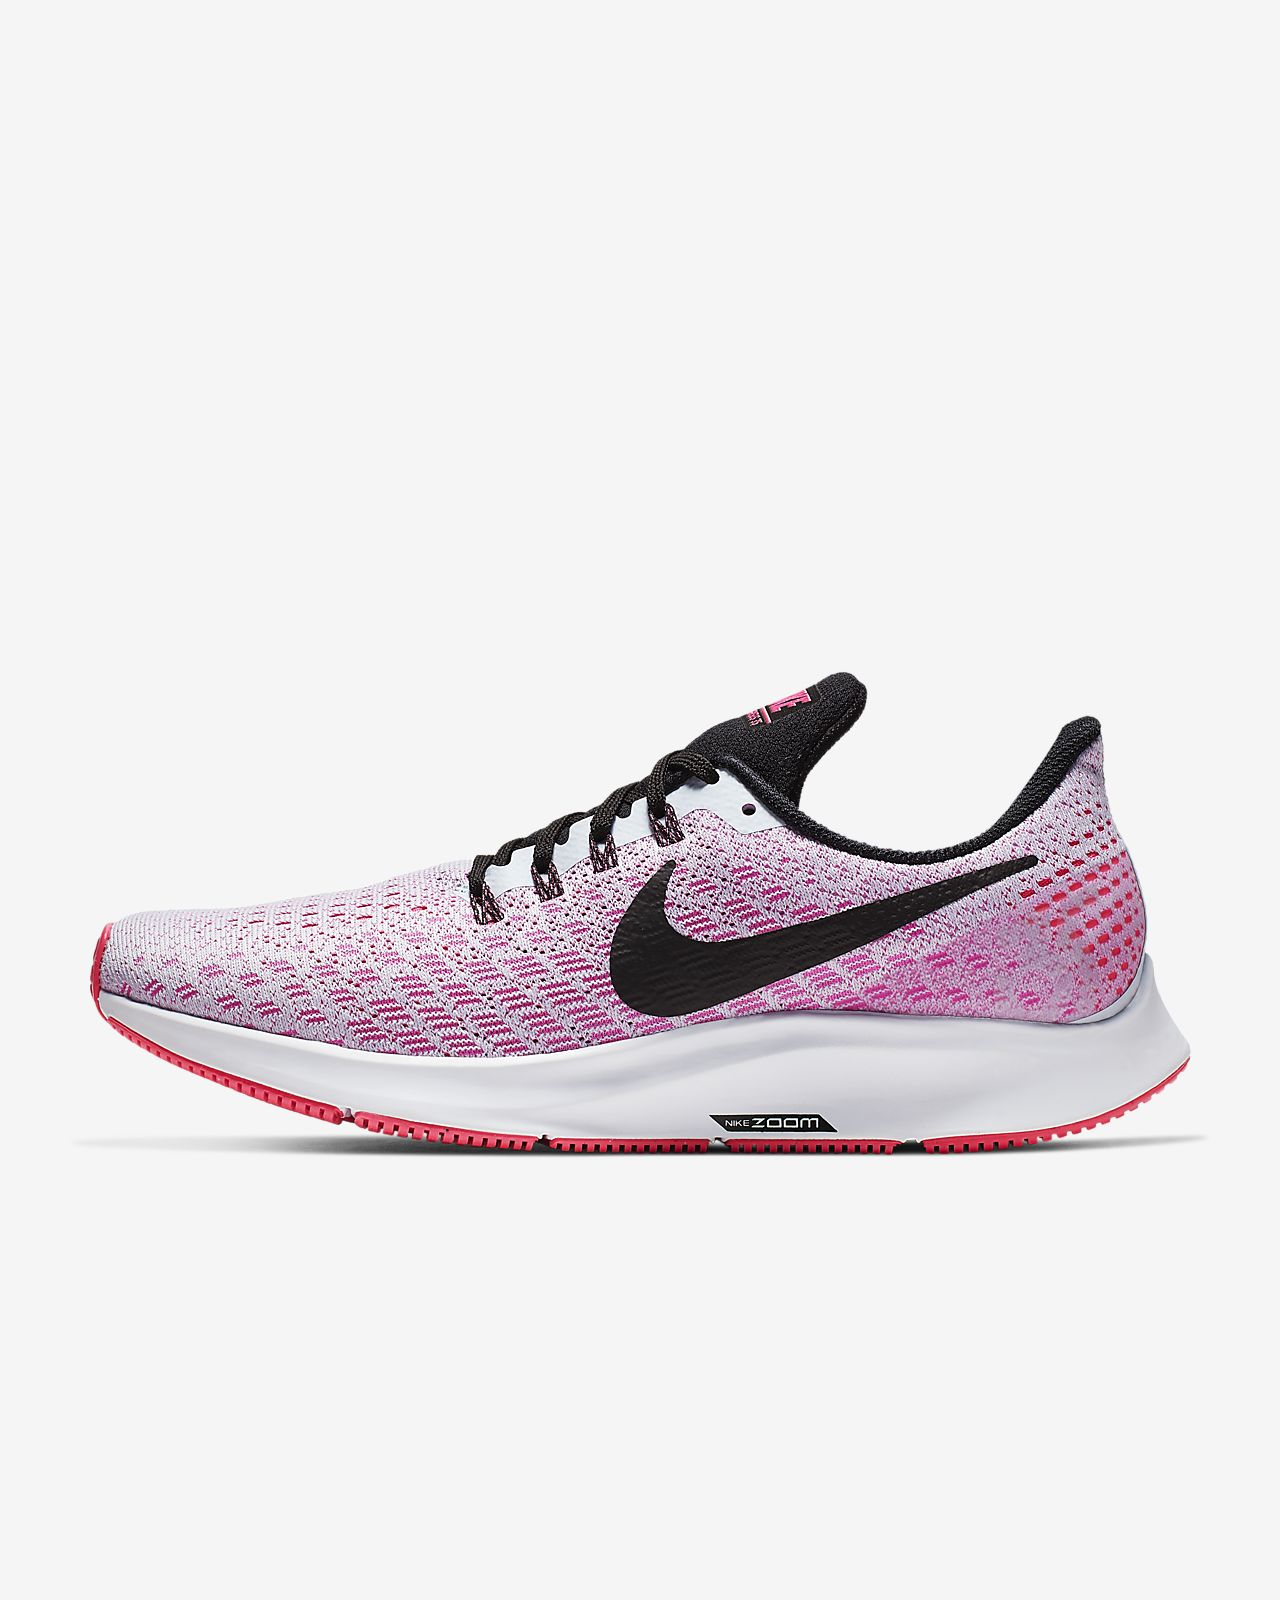 4f5d0801f51f Nike Air Zoom Pegasus 35 Women s Running Shoe. Nike.com